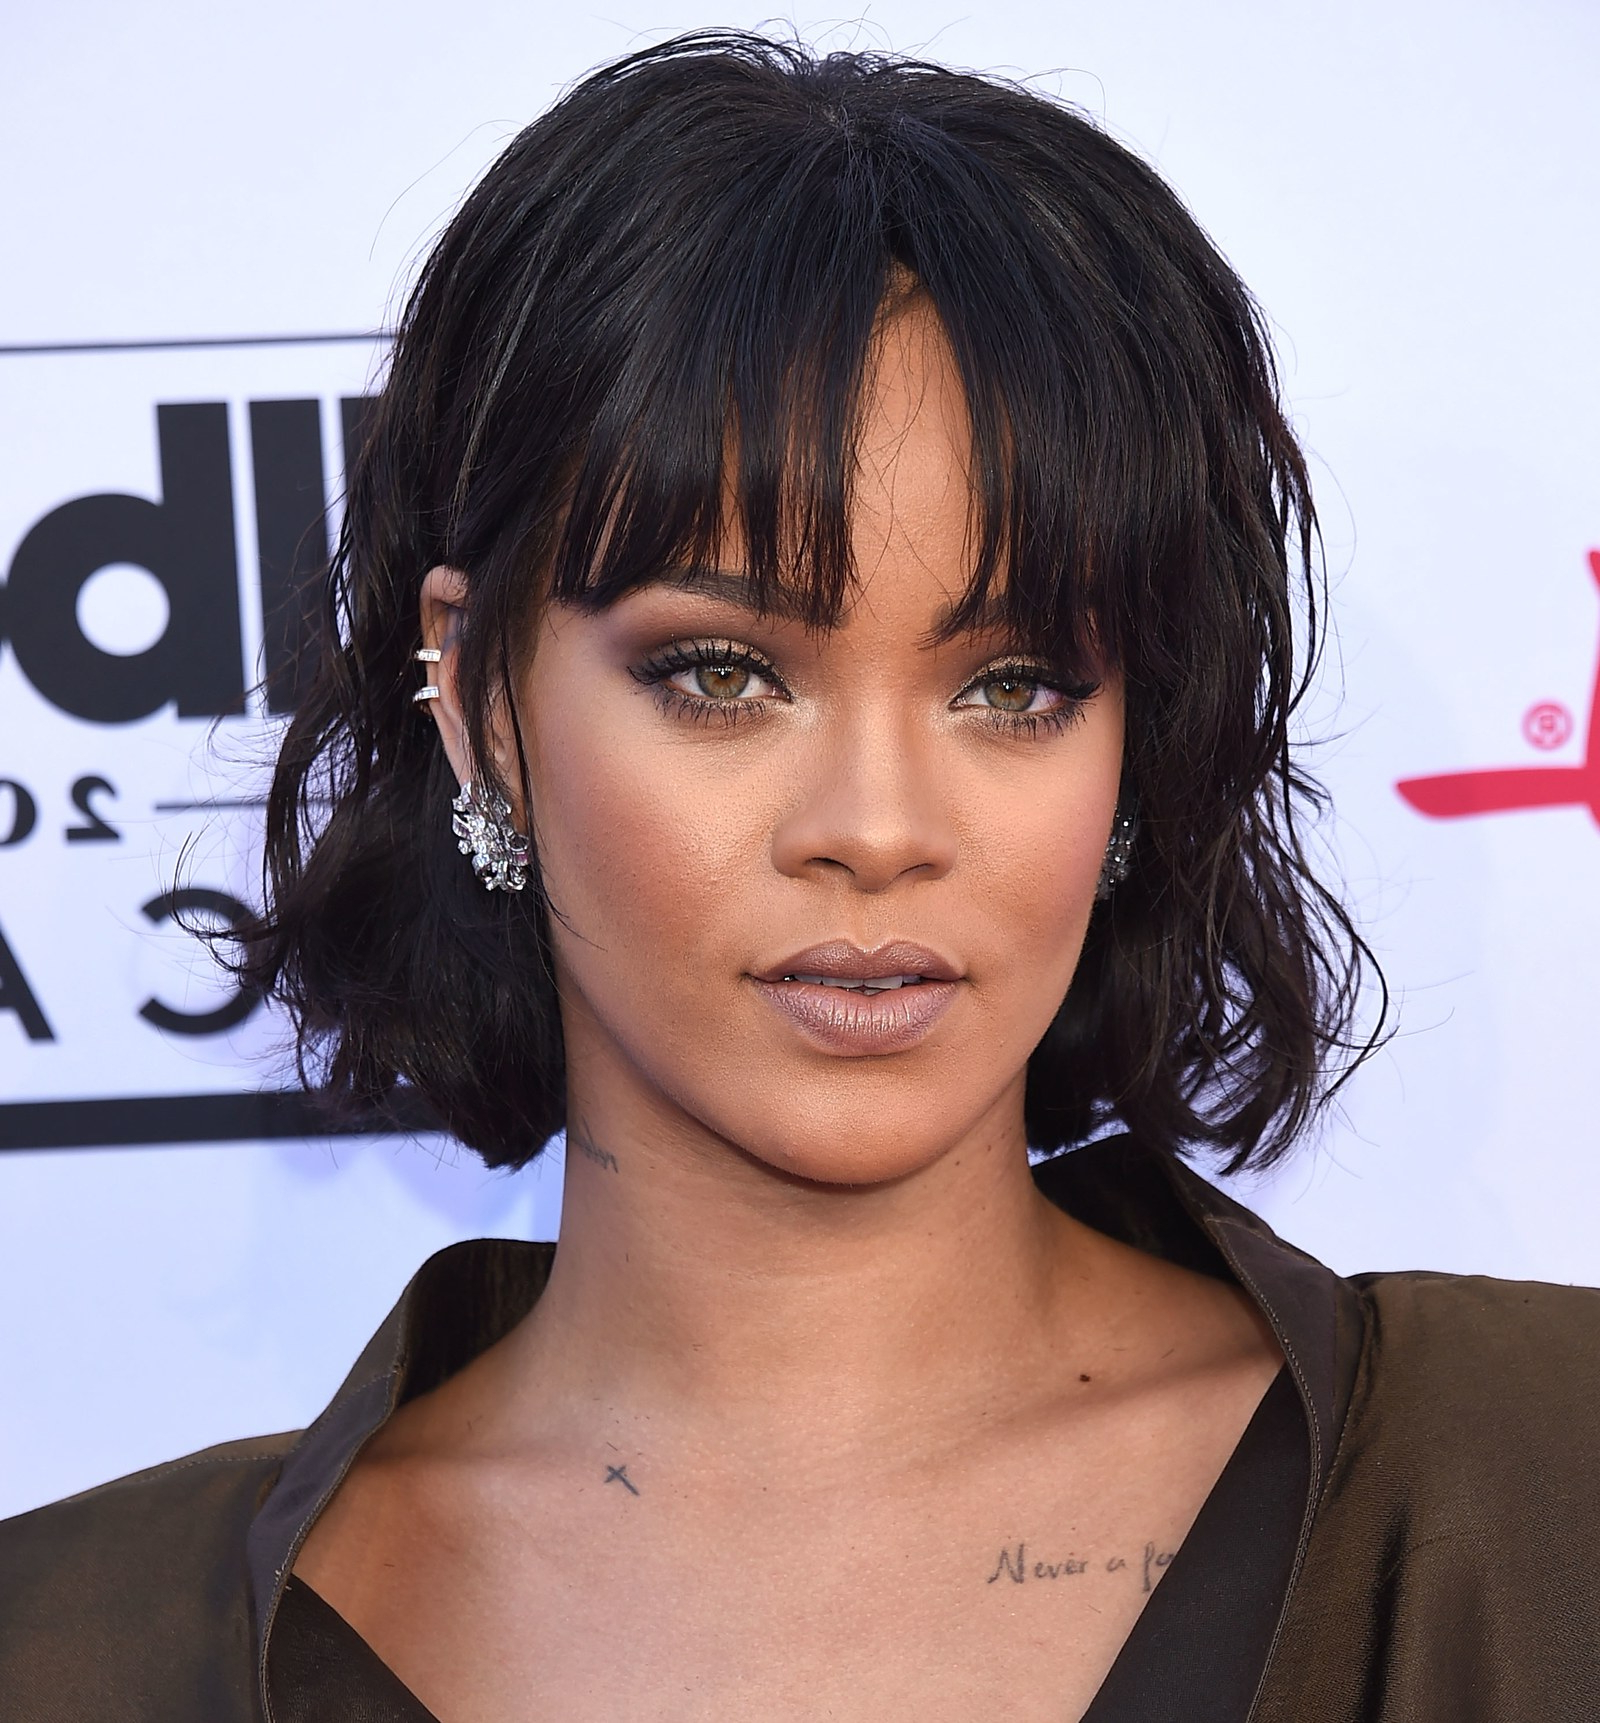 The Best Bangs For Your Face Shape – Glamour With Short Haircuts For Small Foreheads (View 14 of 25)